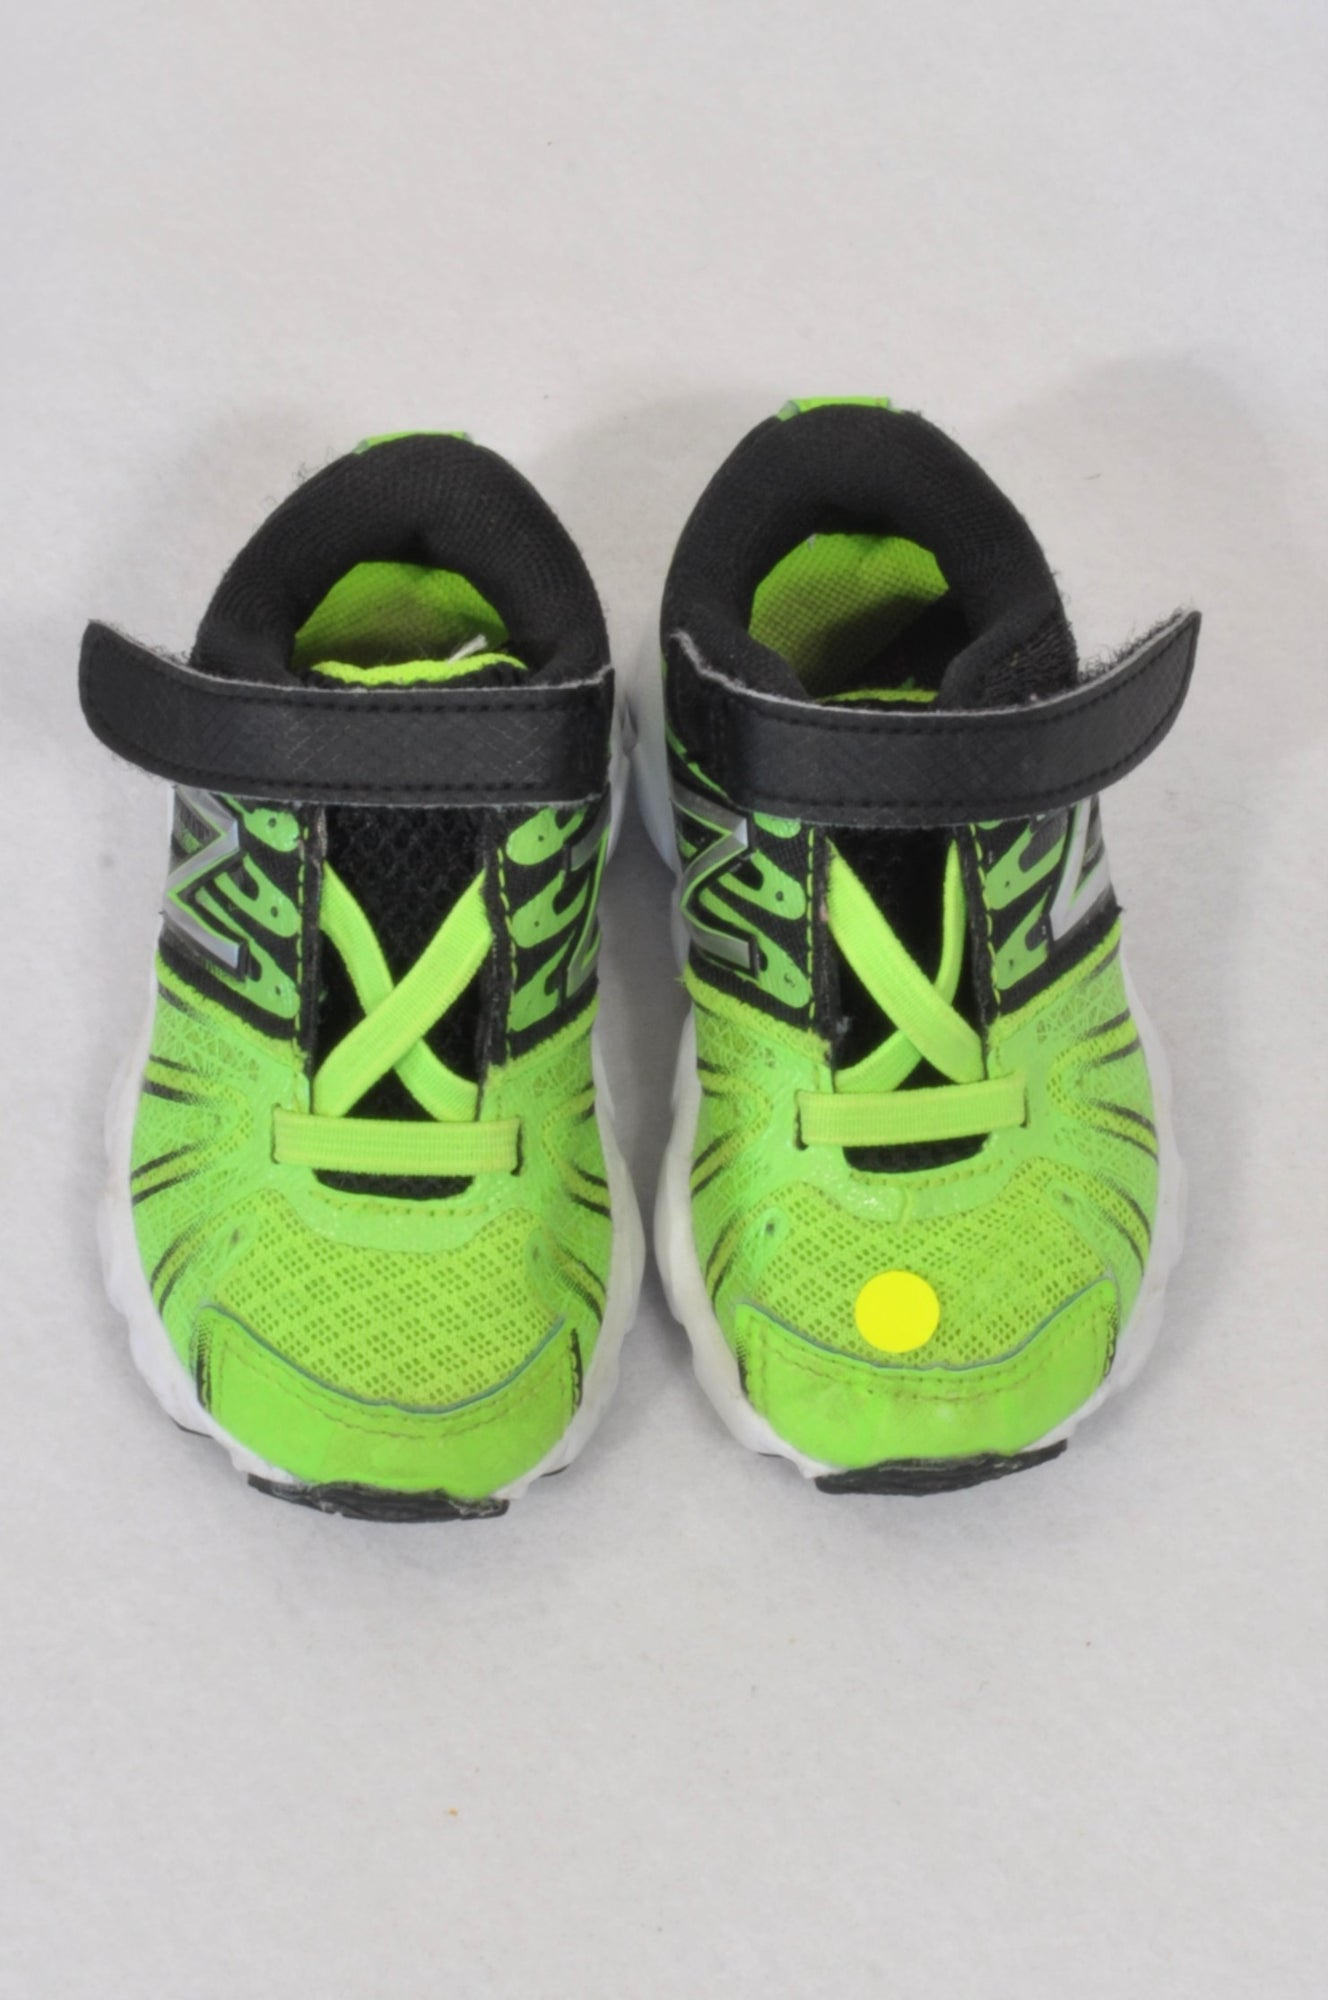 New Balance Size 3.5 Lumo Green & Black Velcro Shoes Boys 9-12 months